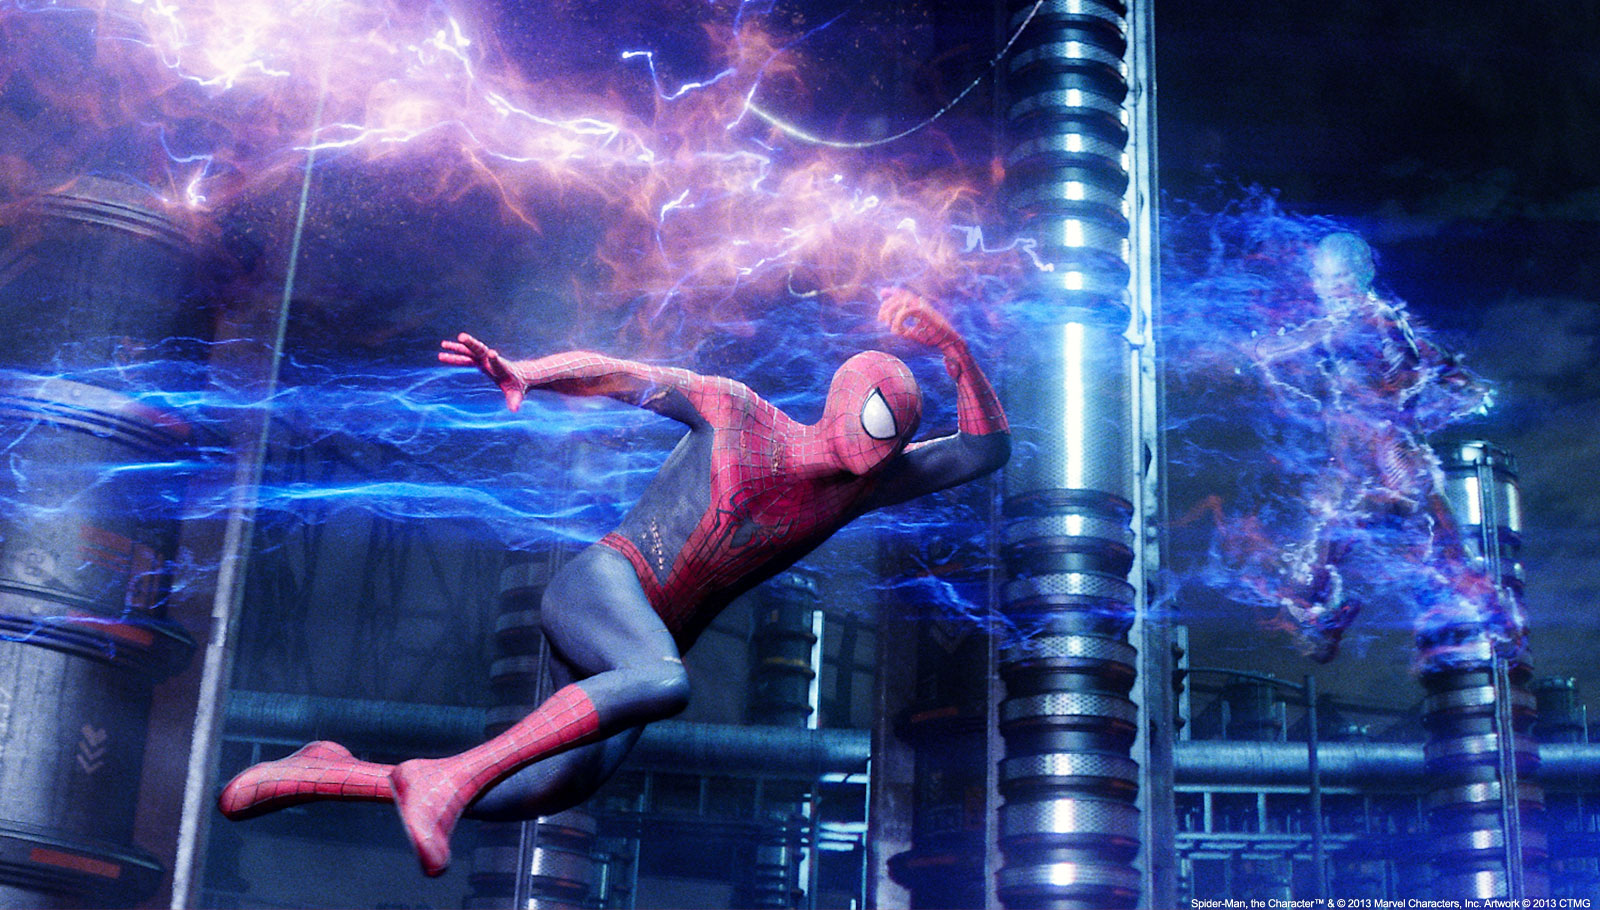 My pics collection of The Amazing Spider-Man 2